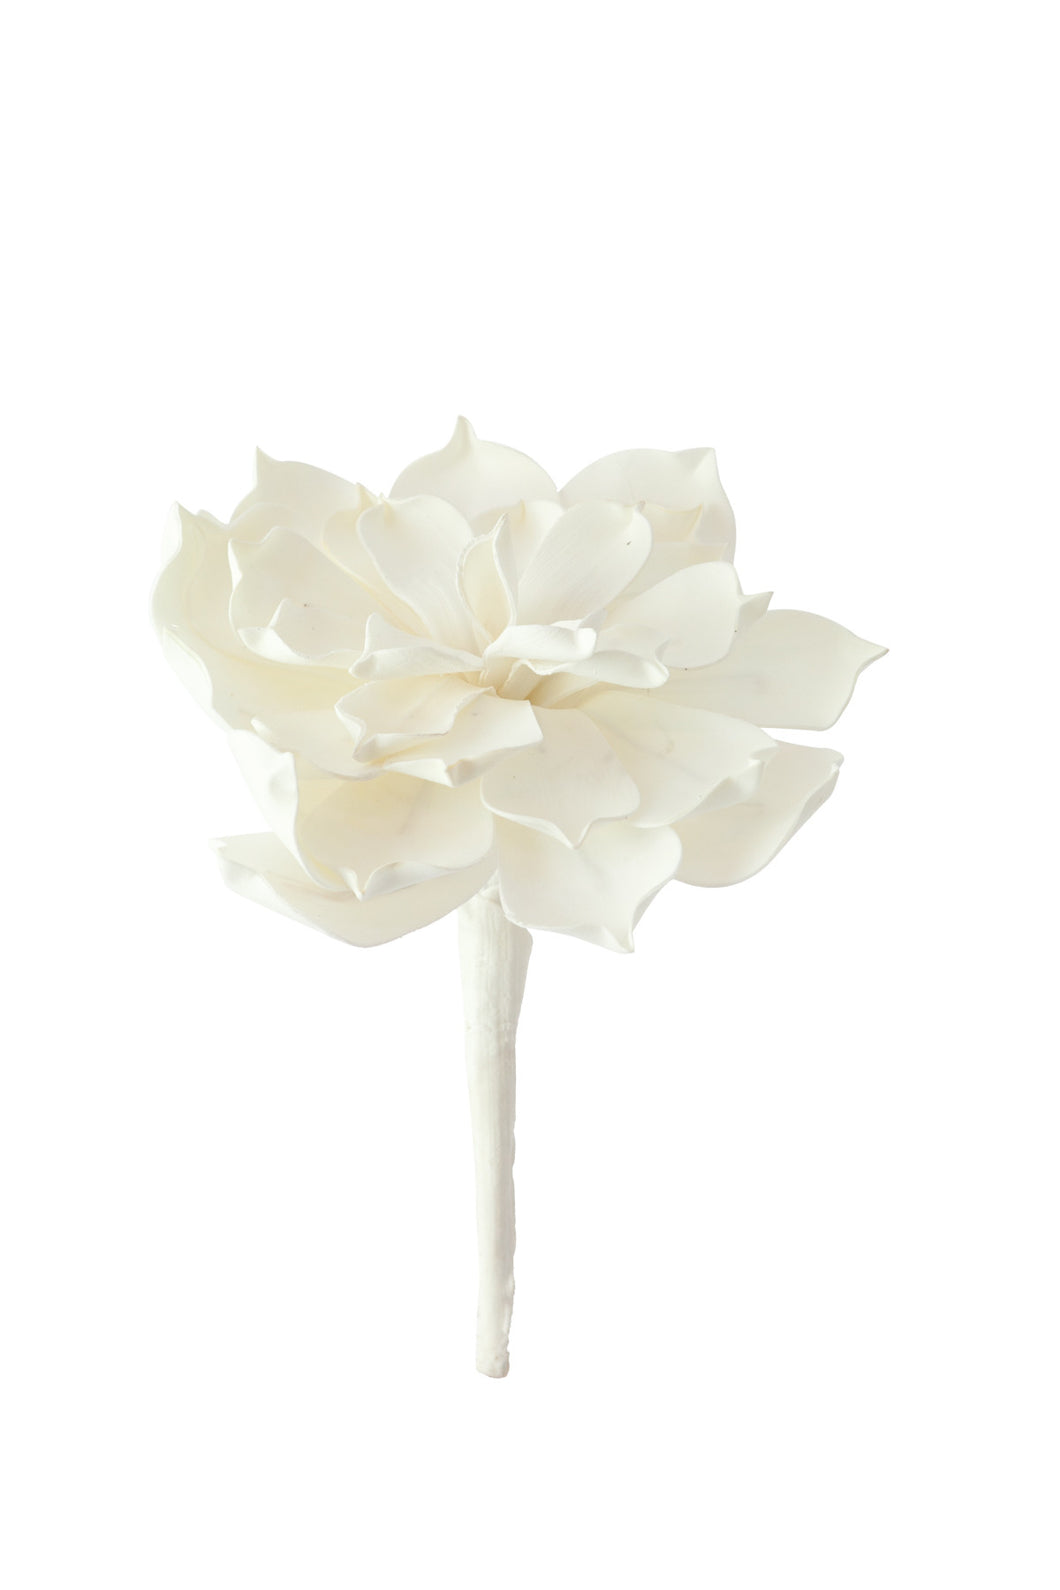 White Flower, Home Accessories, Laura of Pembroke